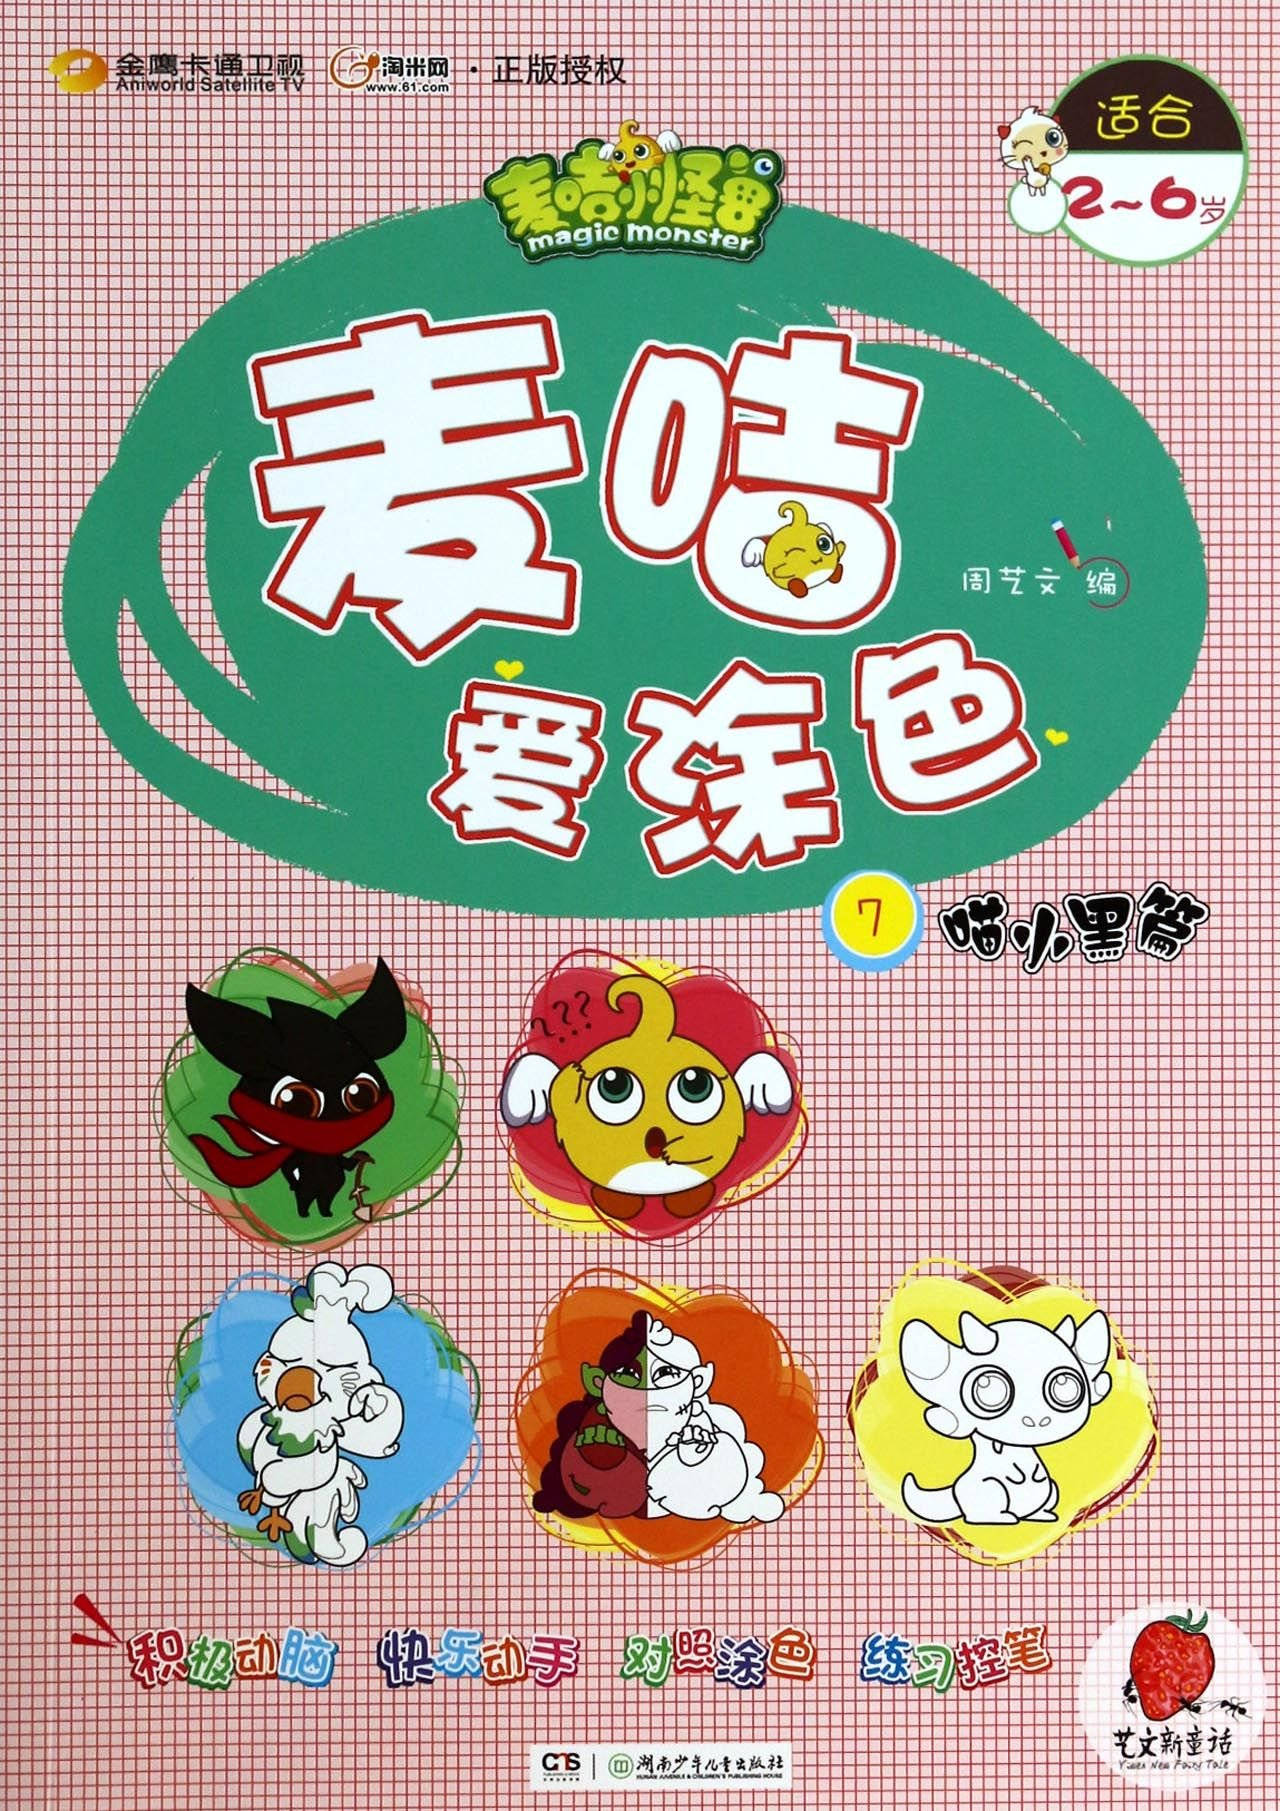 Download Jimmy card monster: wheat Card love coloring 7 (meow black piece suit 2-6 years old)(Chinese Edition) ebook